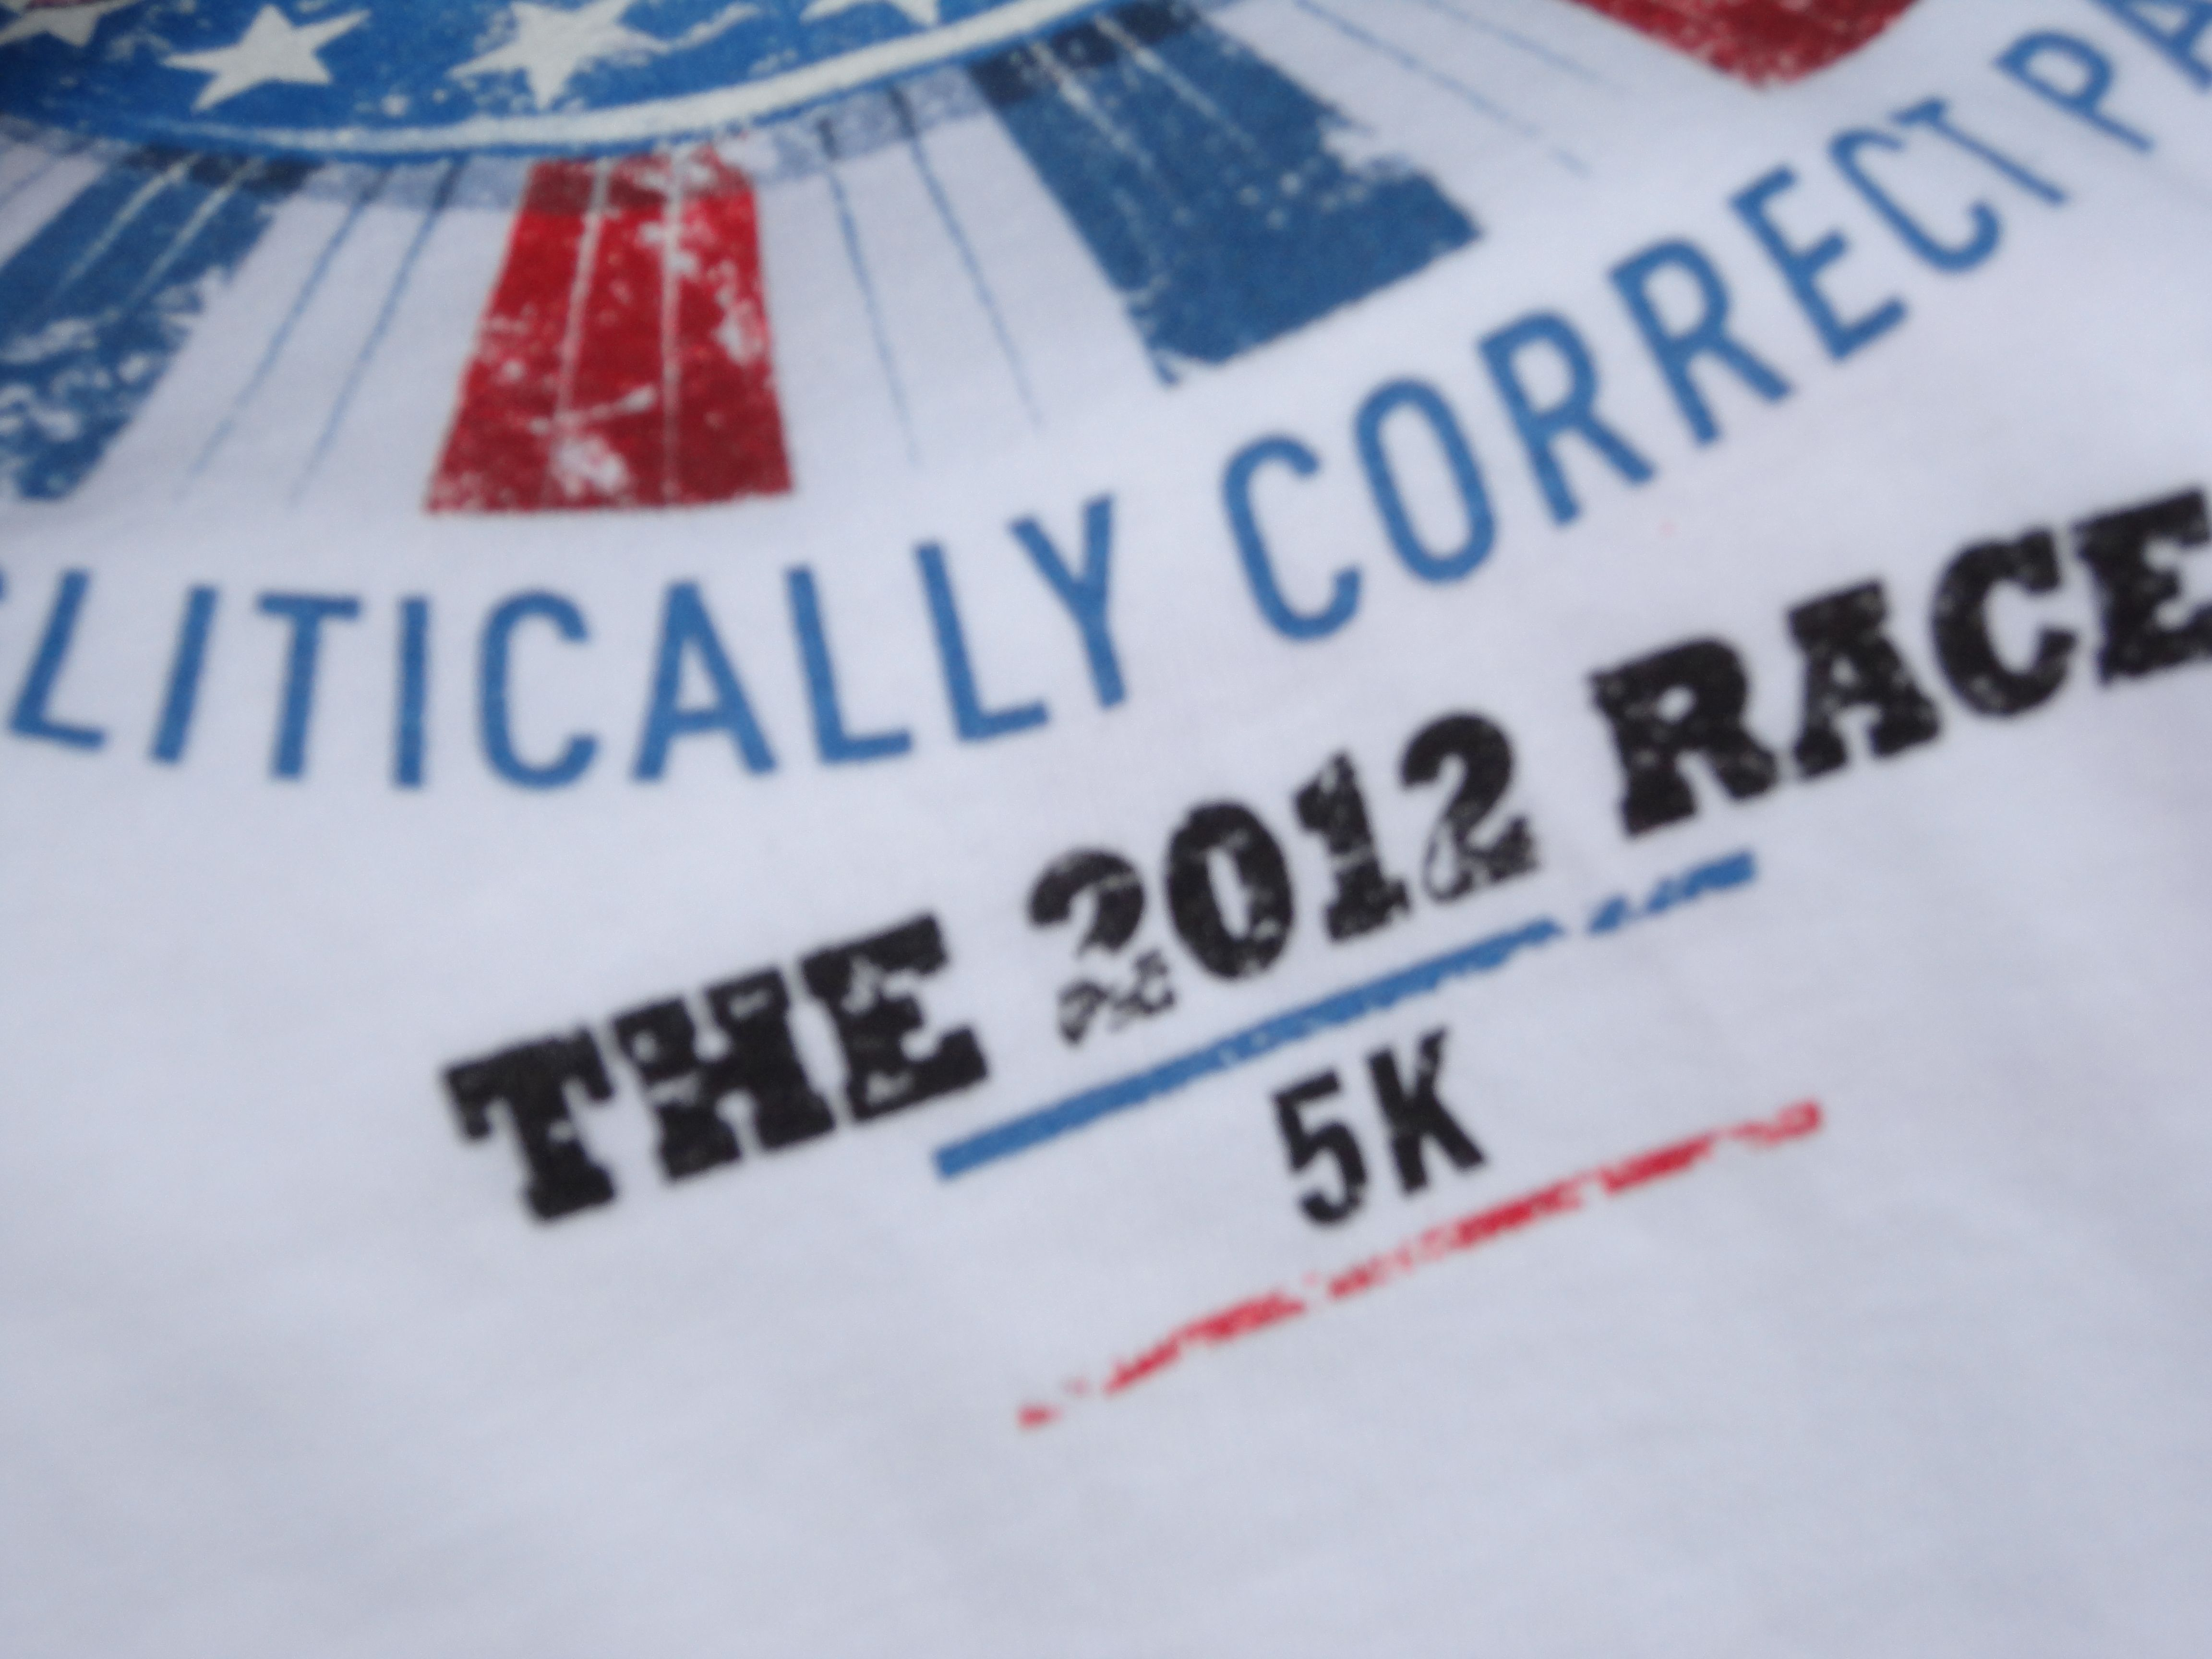 The accidental photo of the 2012 pig   t-shirt...hahaha